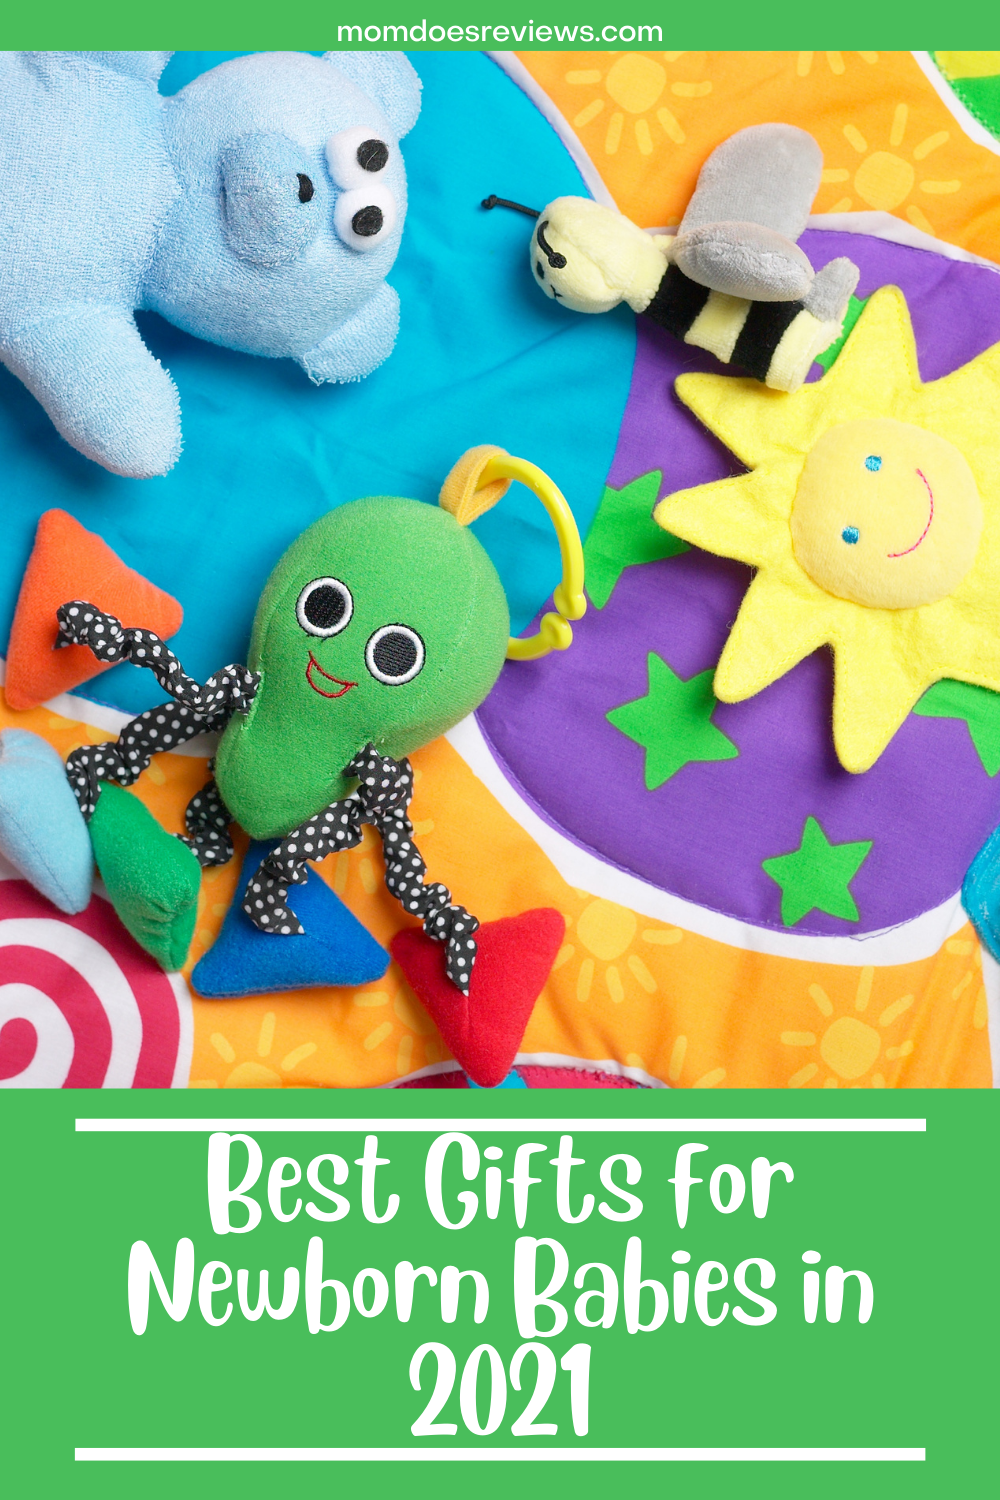 Best Gifts for Newborn Babies in 2021